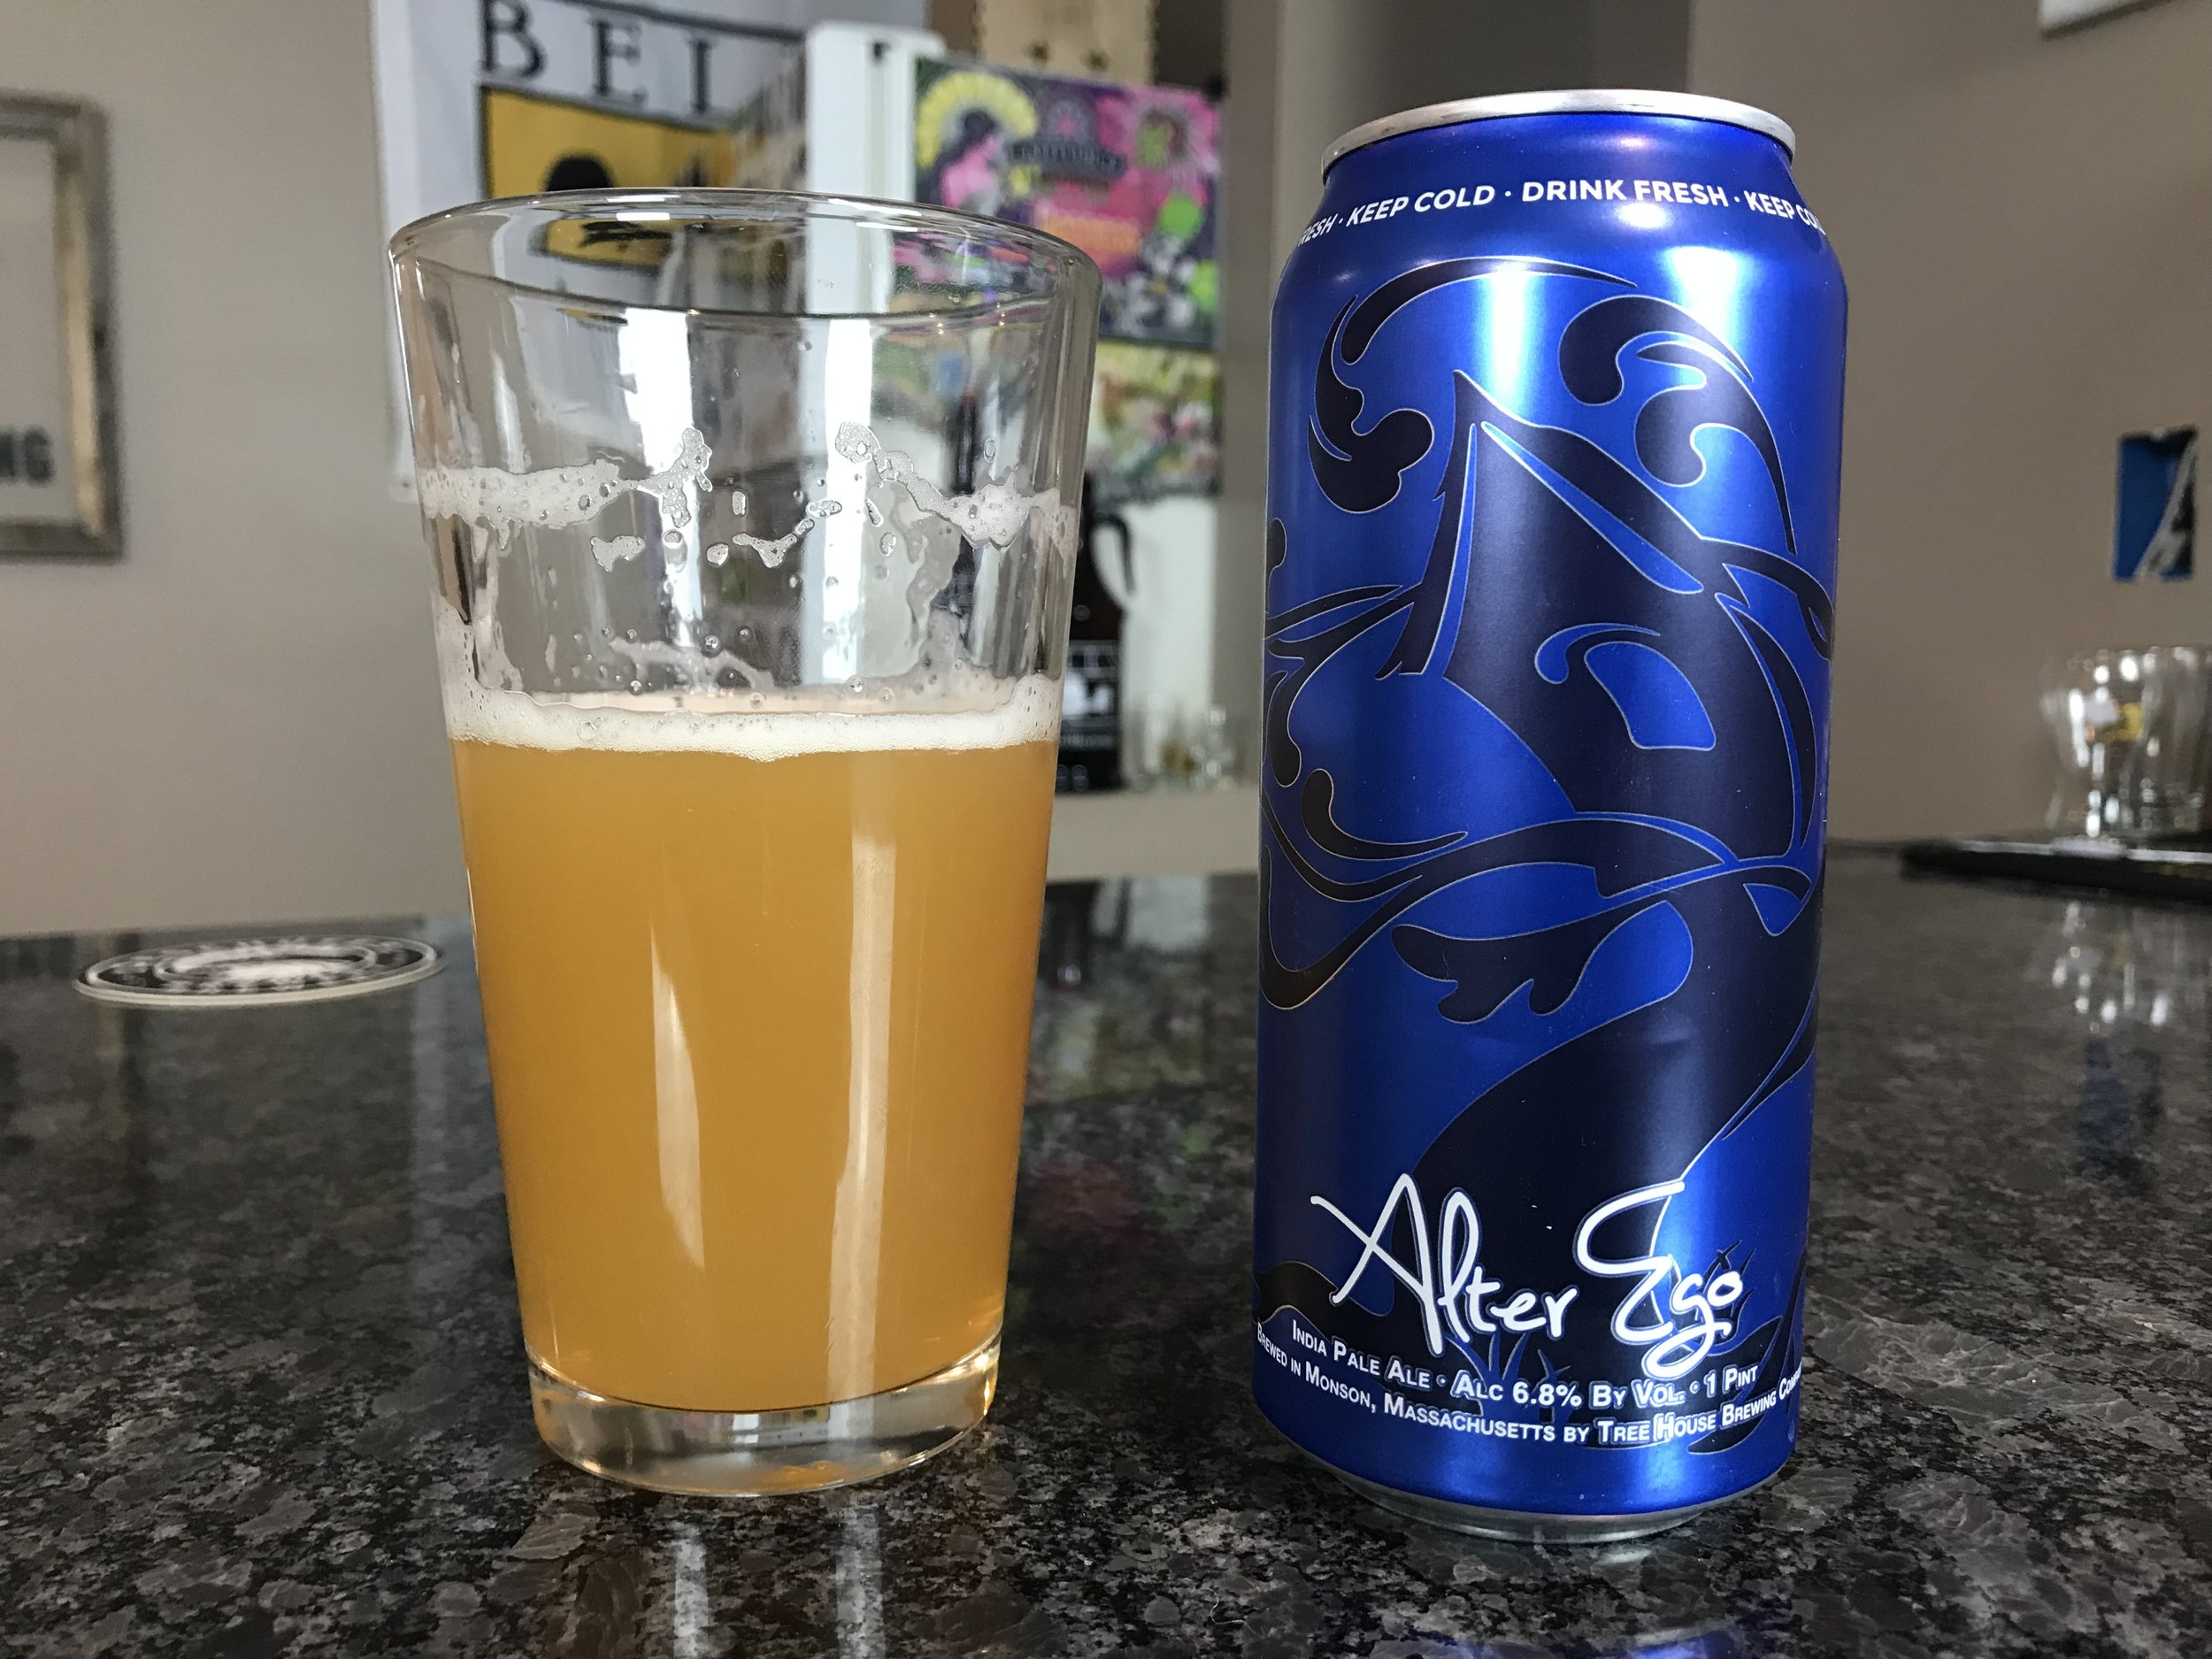 Alter Ego 6.8% ABV - Want to see the Video review? Click on the image.